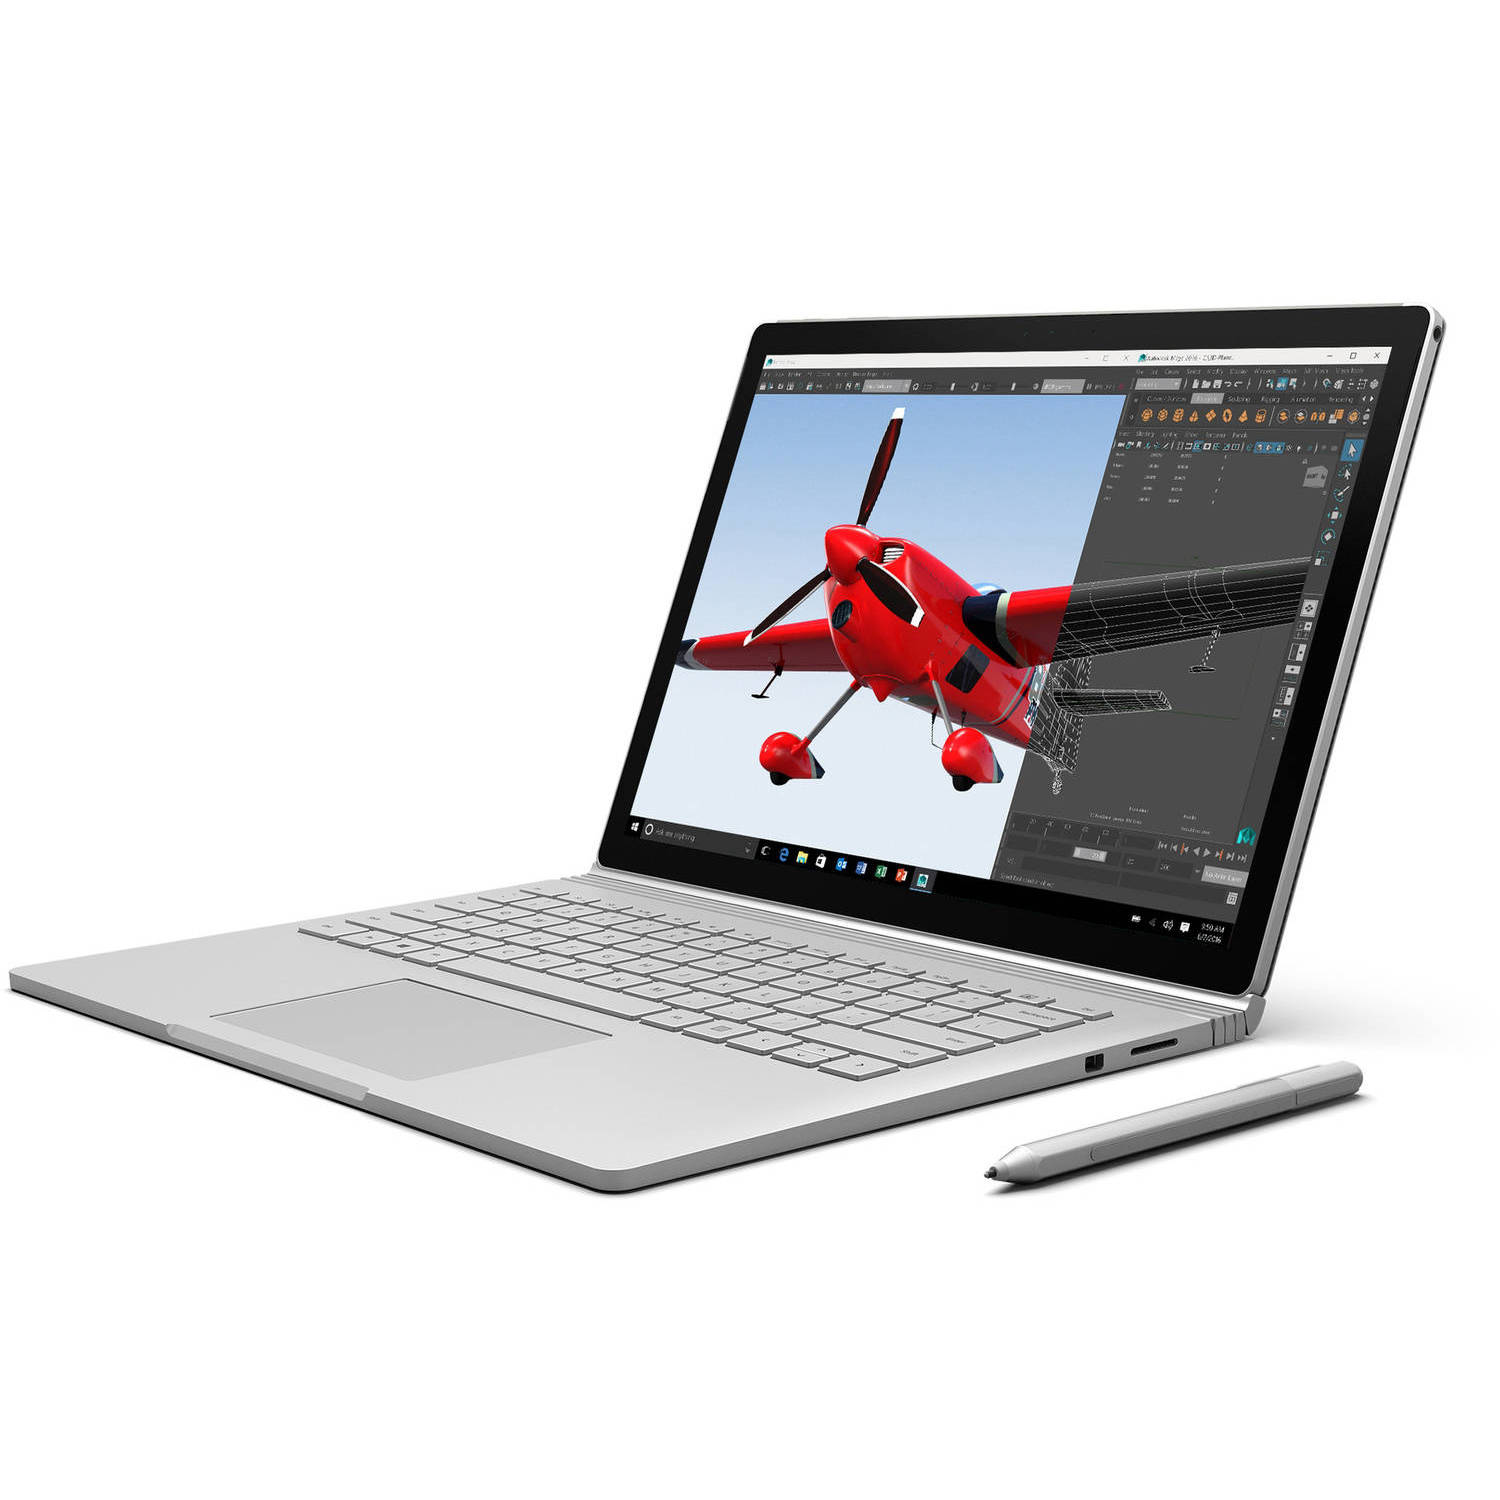 "Microsoft Surface Book 13.5"" 8GB/ 256GB Intel Core i5 Windows 10 Pro"